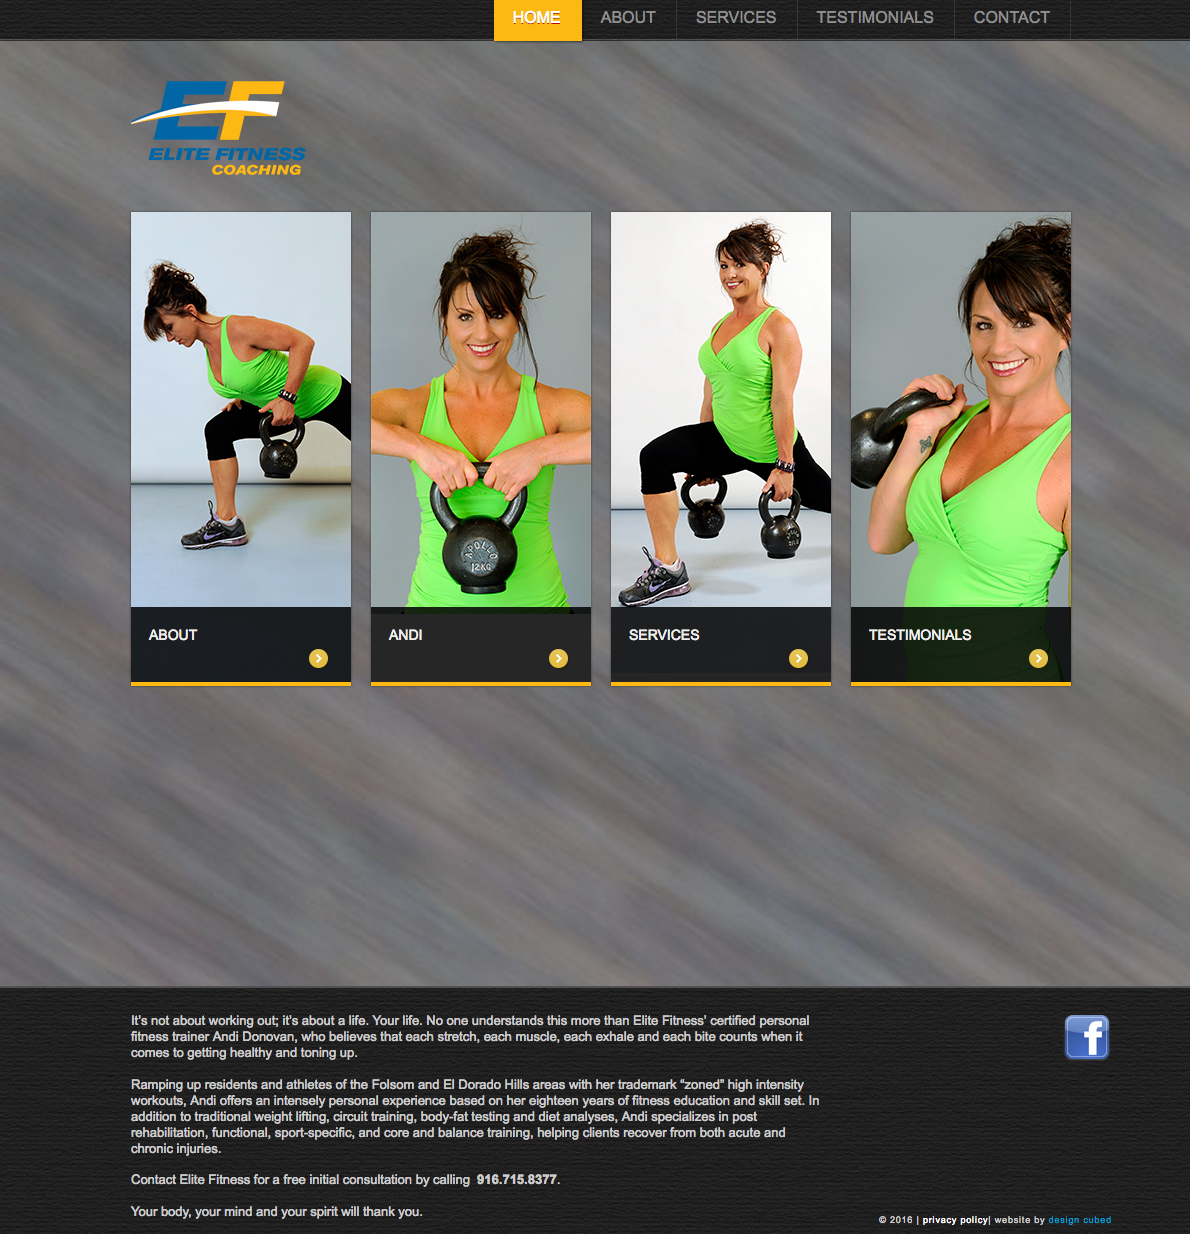 Elite Fitness Coach Home Page Image